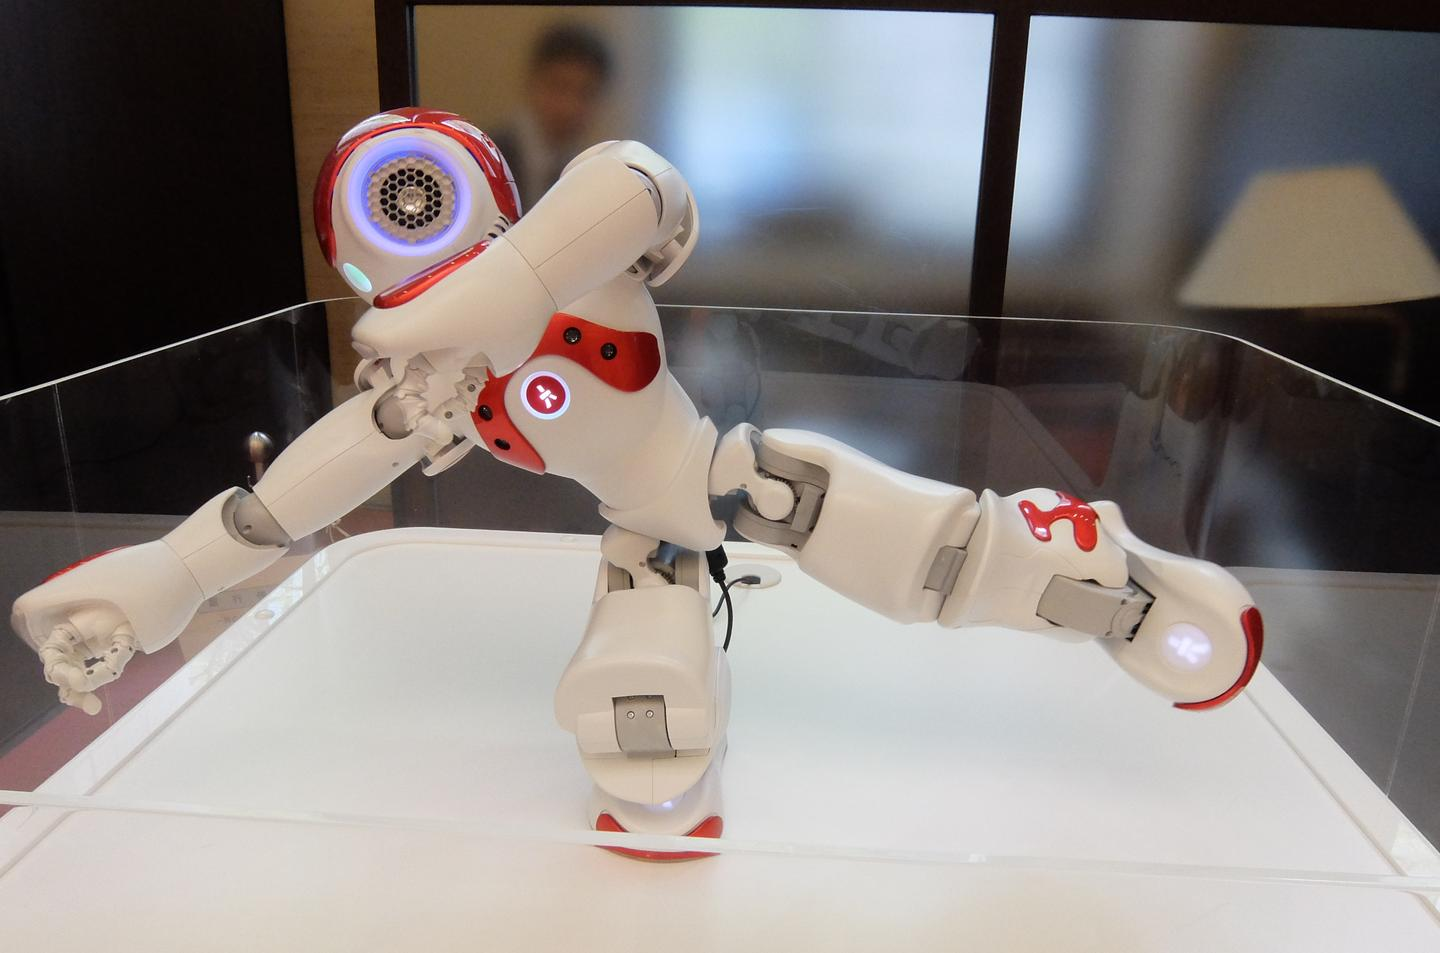 In between giving advice in Mitsubishi UFJ bank, NAO kept active by doing Tai-Chi (Photo: Stephen Clemenger/Gizmag.com)